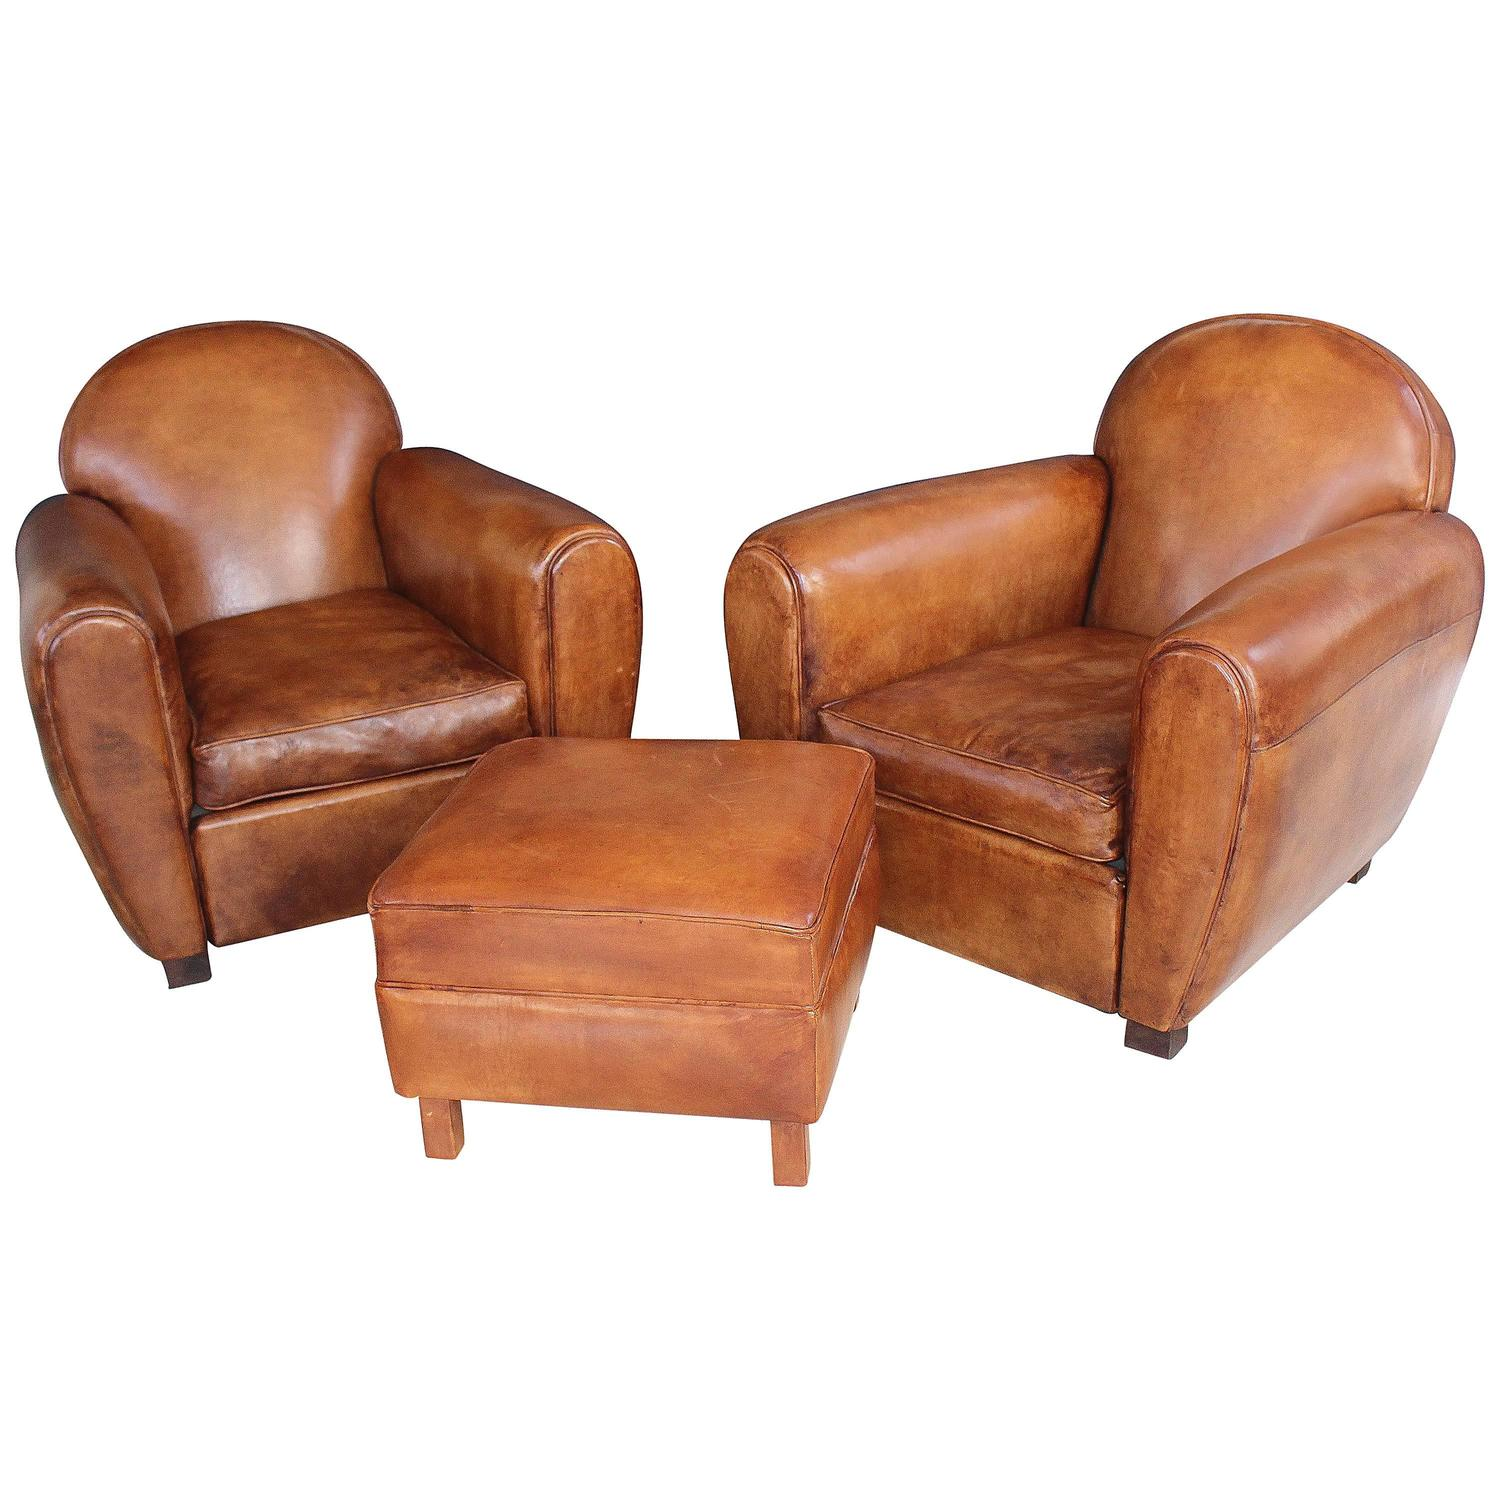 French Club Chair Pair Of New French Leather Club Chairs With Ottoman At 1stdibs